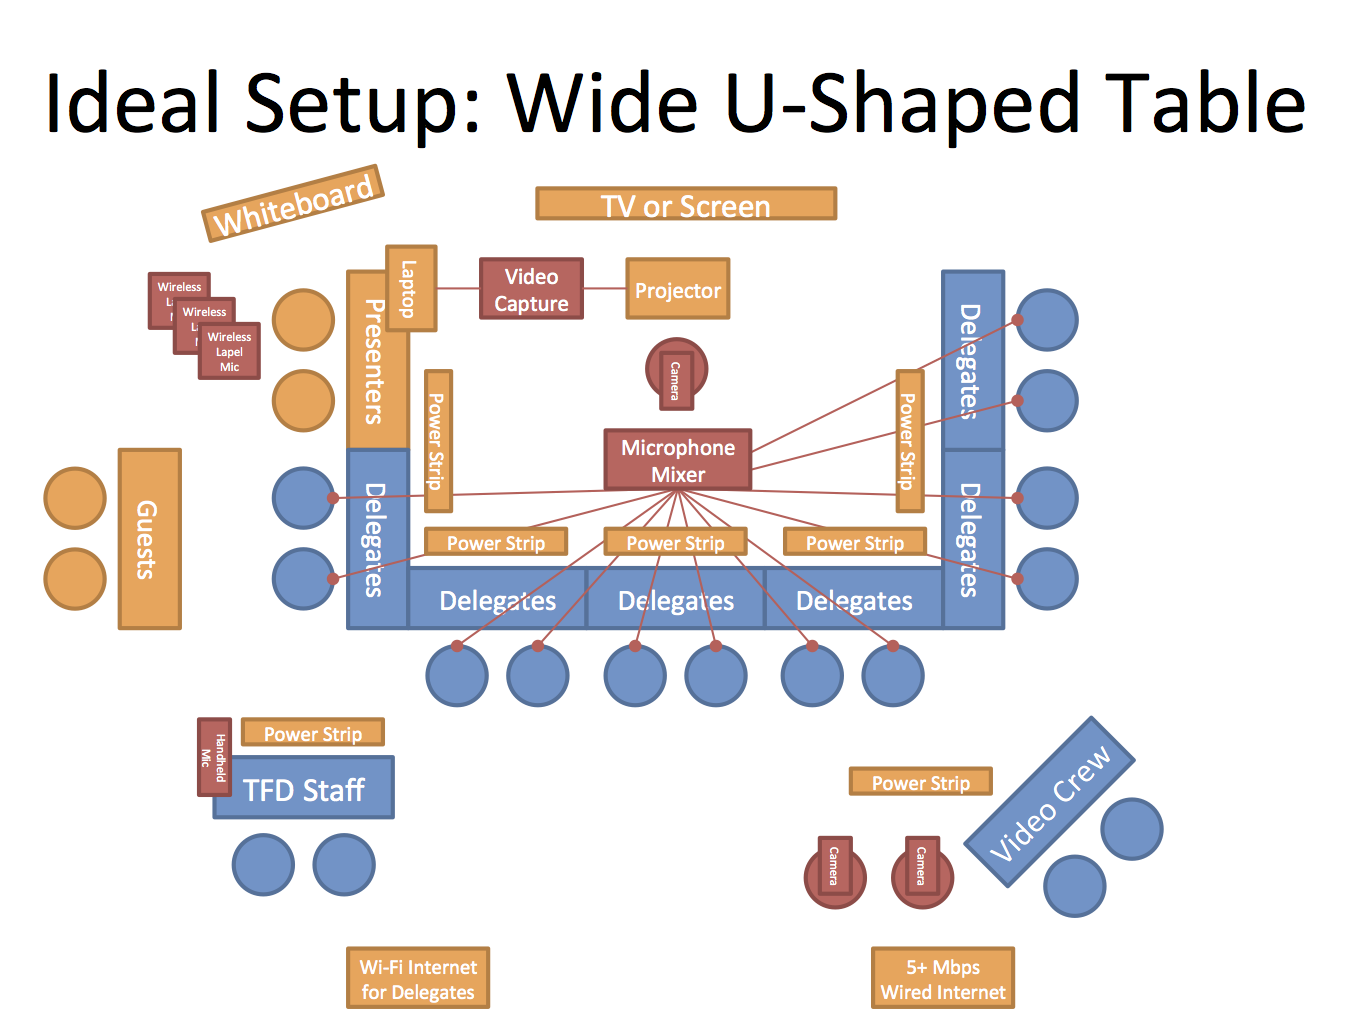 Field Day Room Setup Tech Wiring Diagram For Slide The Ideal Features A Wide U Shaped Table With Just Enough